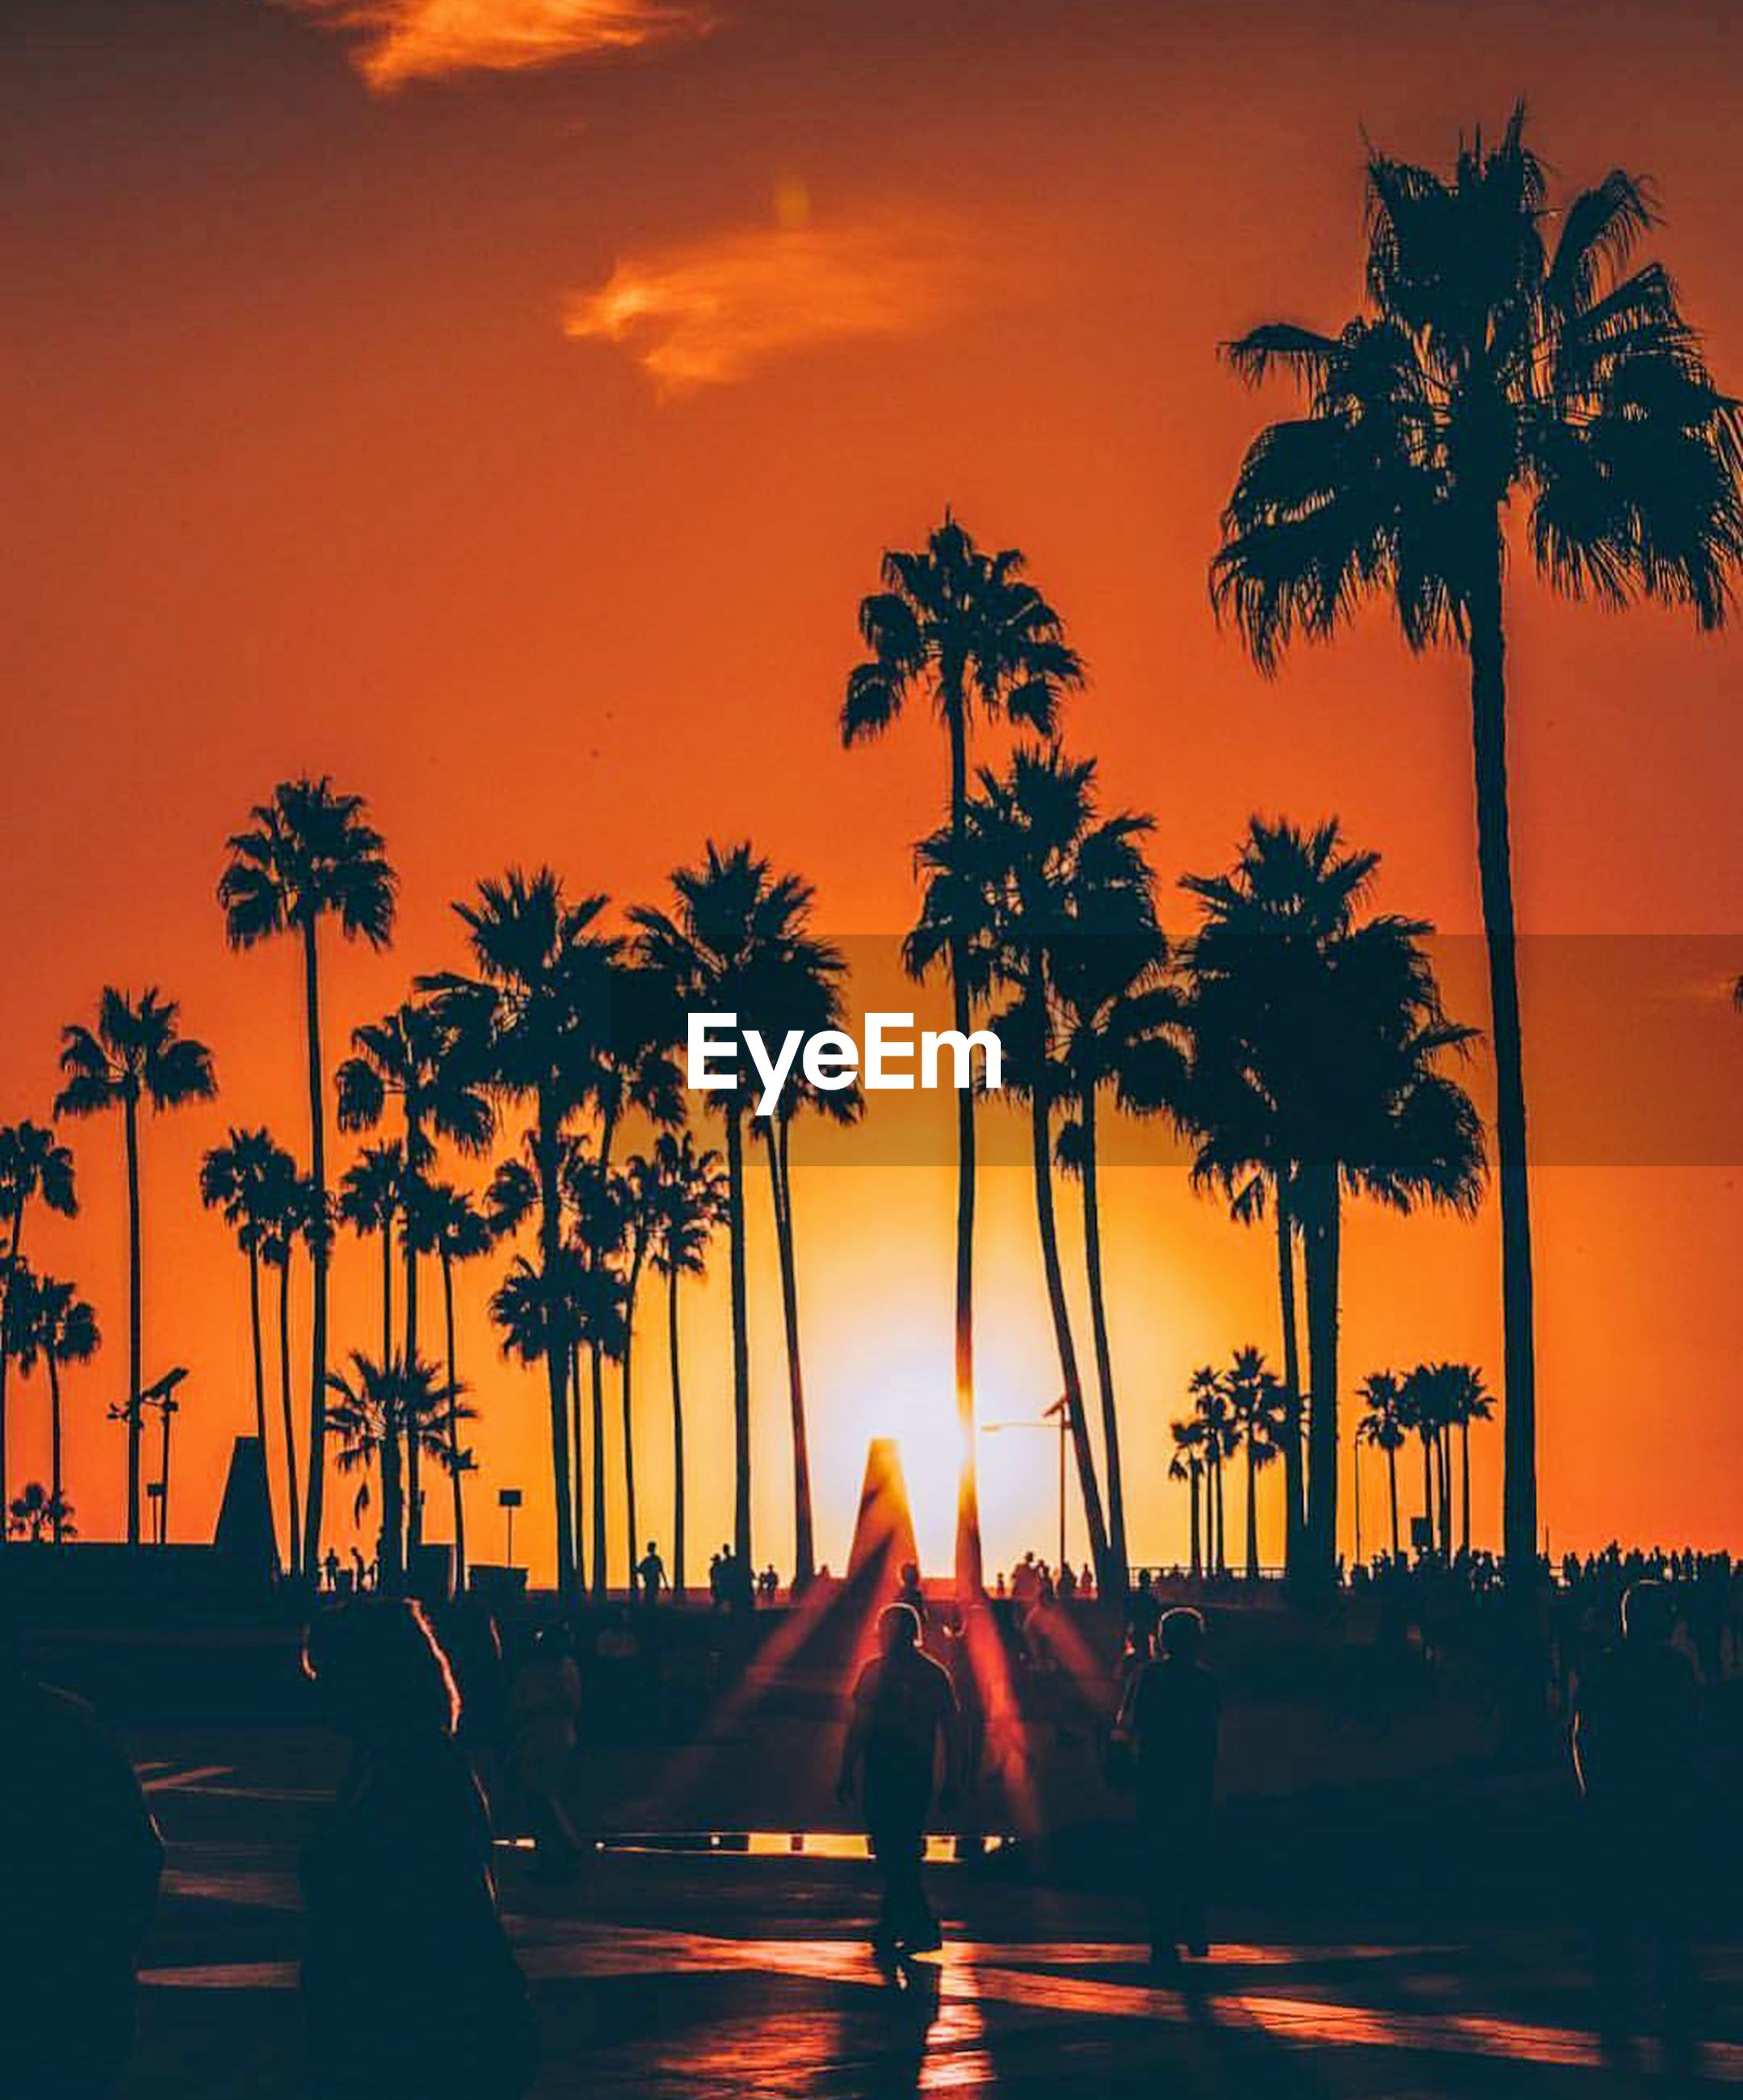 palm tree, sunset, sea, travel, vacations, travel destinations, tree, beach, tourism, outdoors, nature, scenics, landscape, dramatic sky, water, sky, cityscape, night, no people